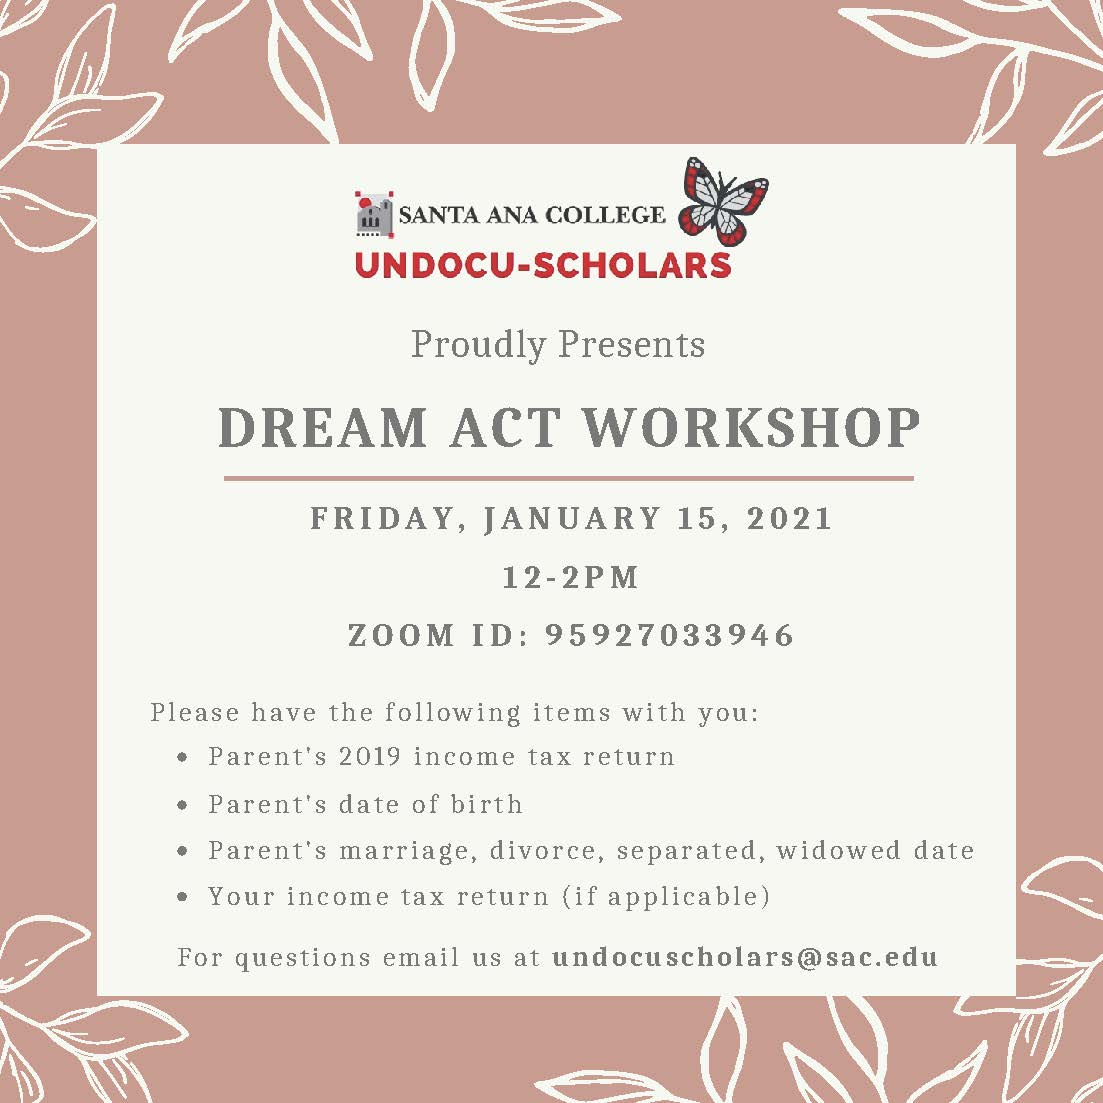 Dream Act Application Workshop Flyer.jpg